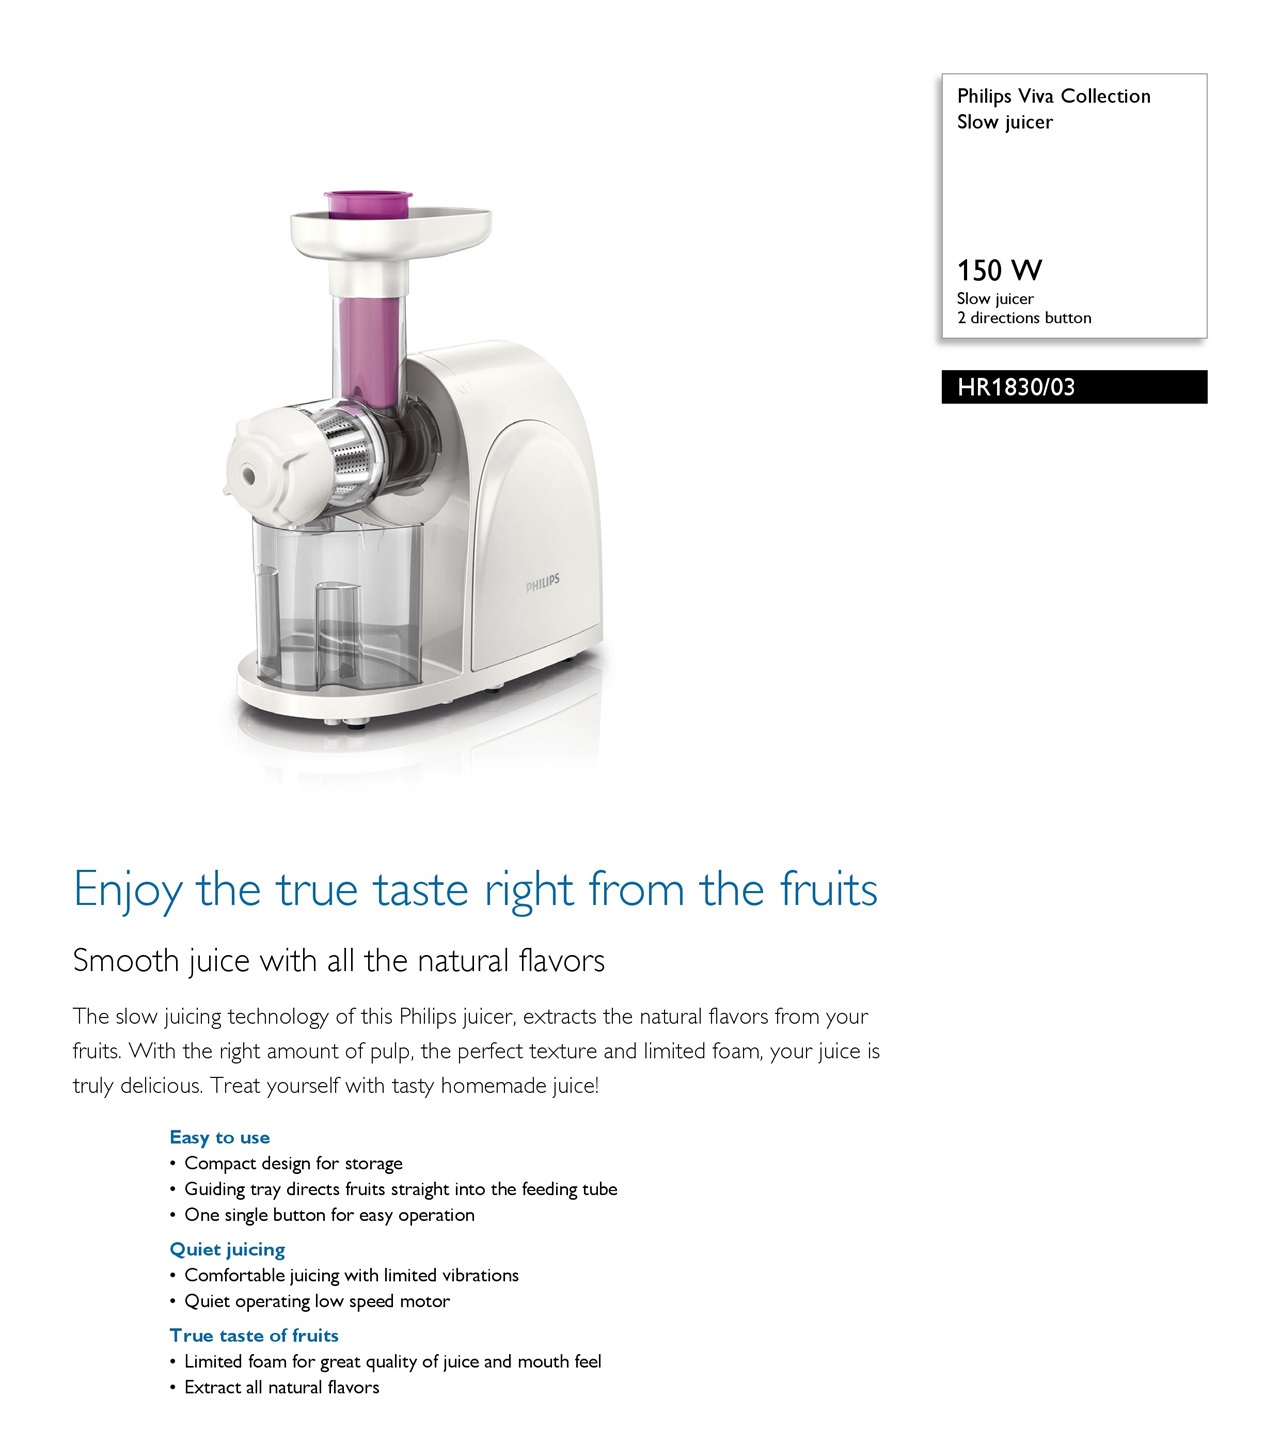 Philips Viva Slow Juicer Hr1830 : ET SOUND ENTERPRISE PTE LTD. Philips viva Collection Slow Juicer HR1830